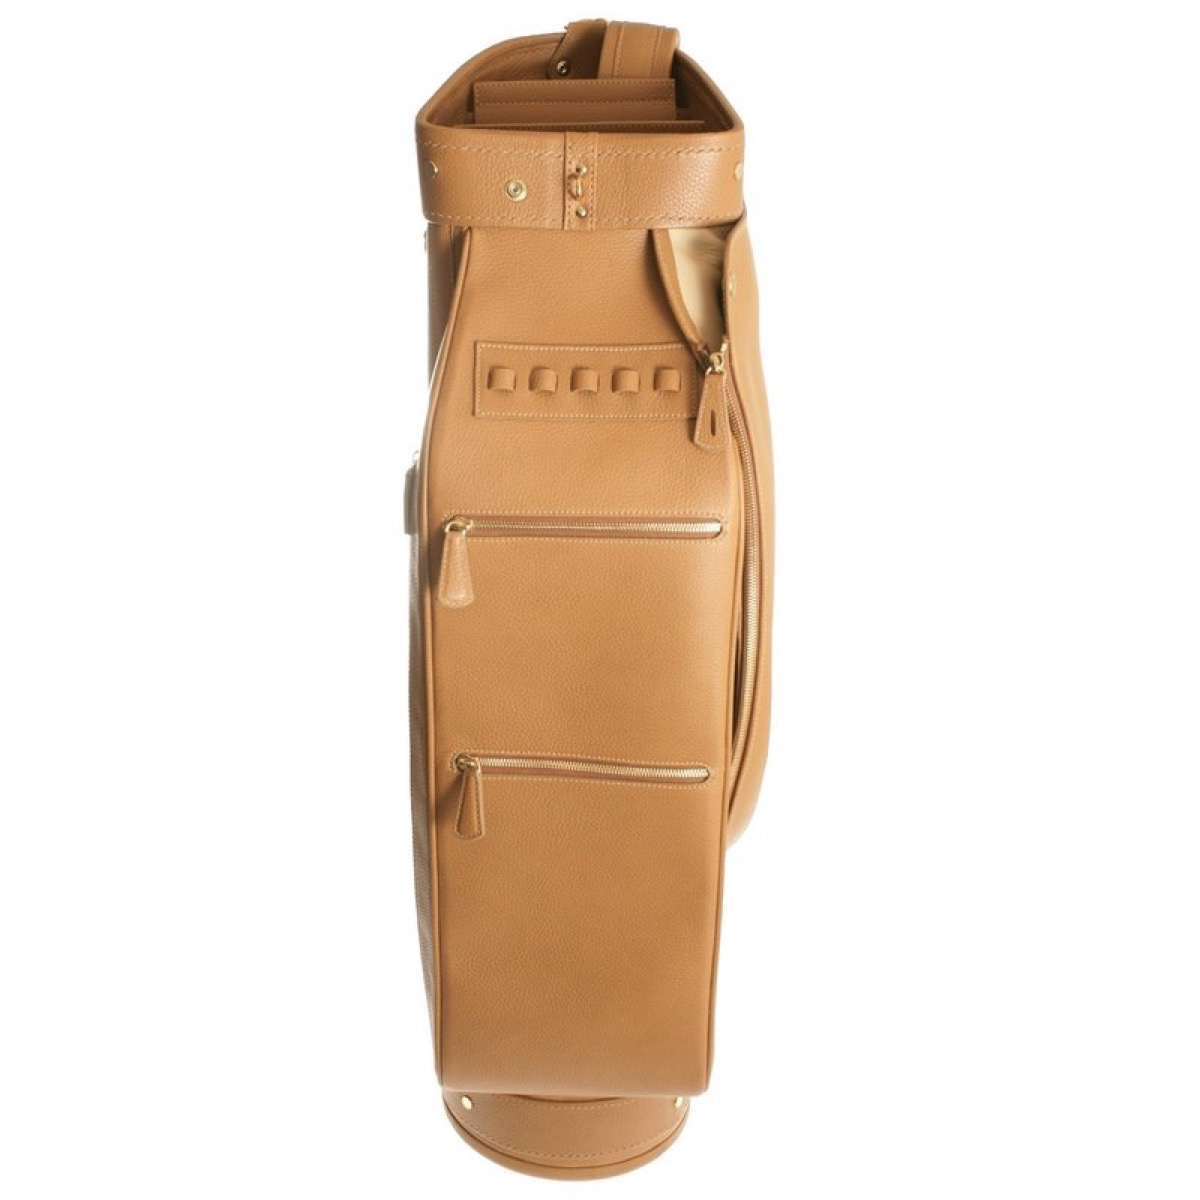 Aha Golf Bag Most Expensive Things on the Planet